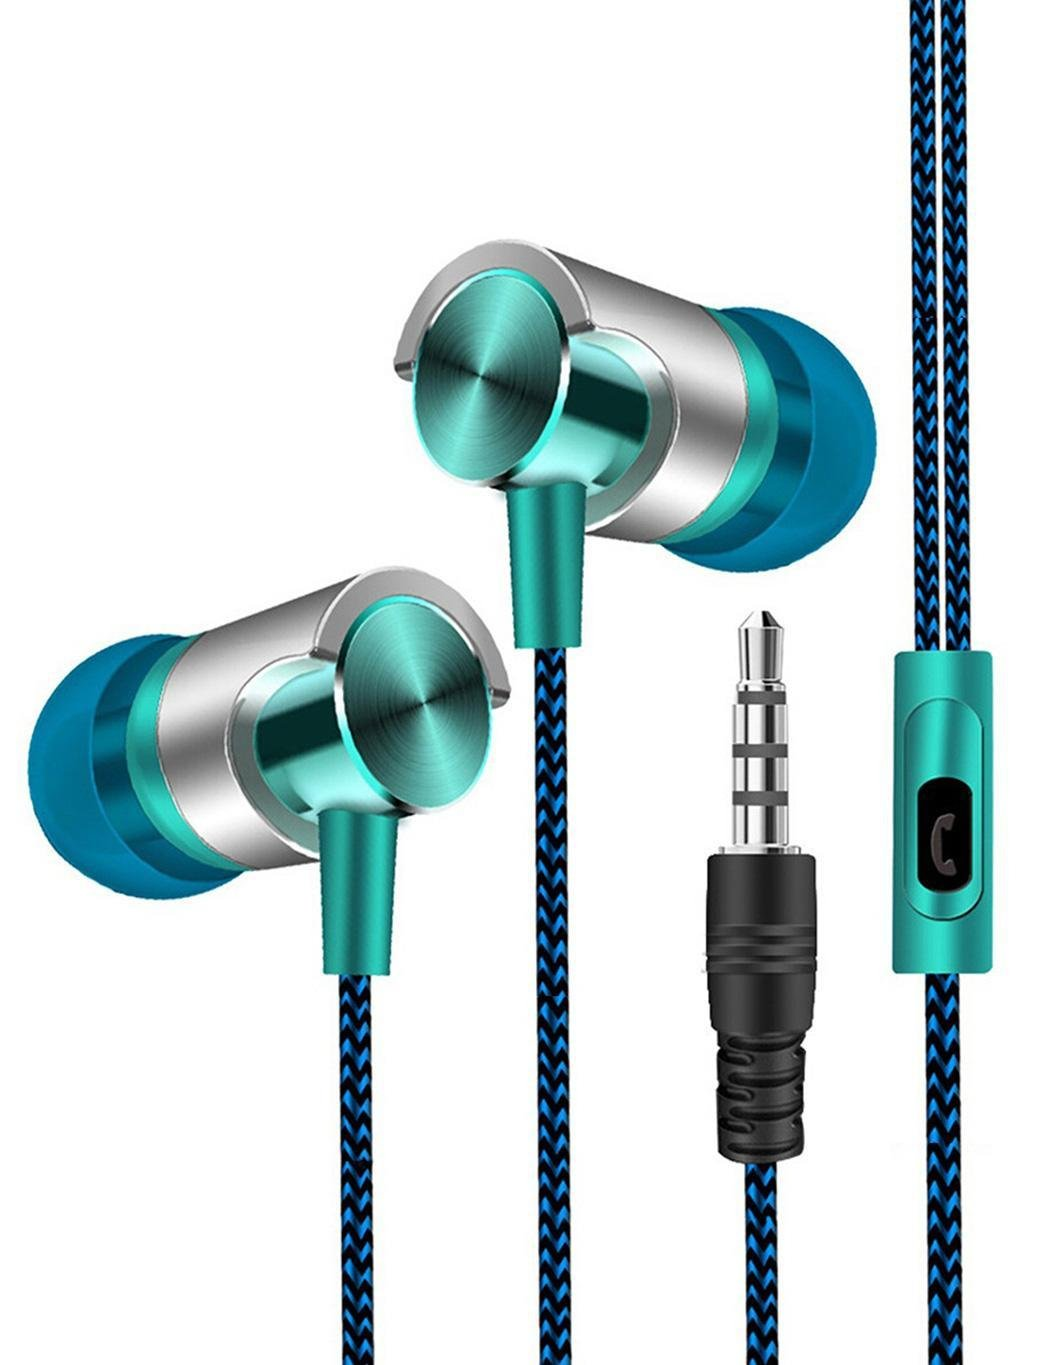 3.5mm Wired Stereo Earphone In-Ear Headphones with Microphone For Phone/MP3